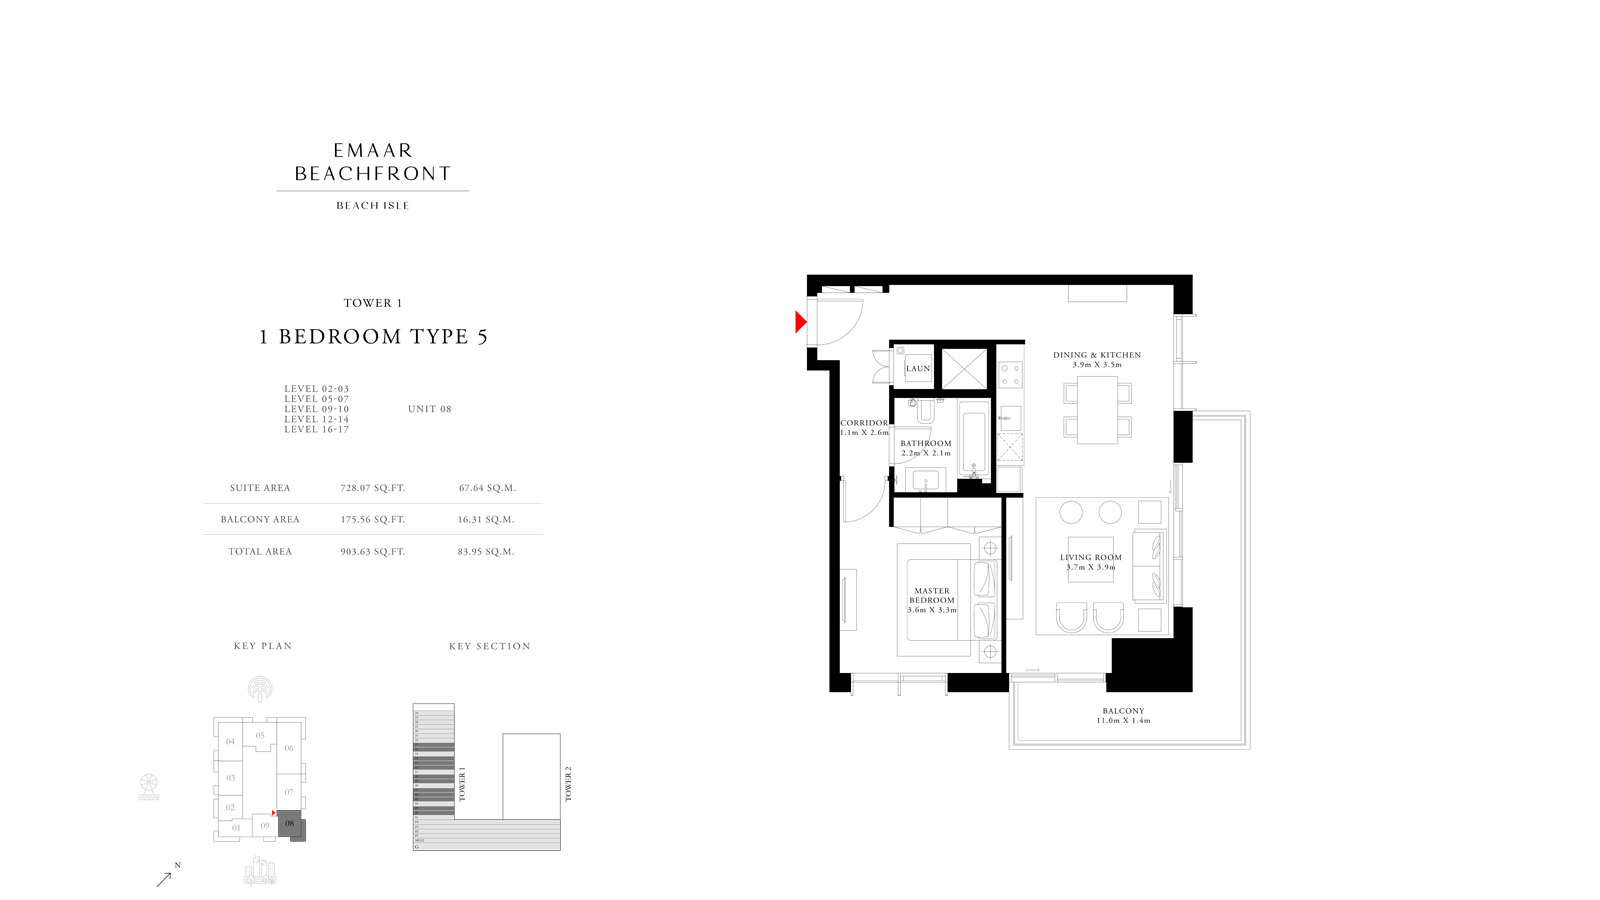 1 Bedroom Type 5 Tower 1, Size 903    sq. ft.